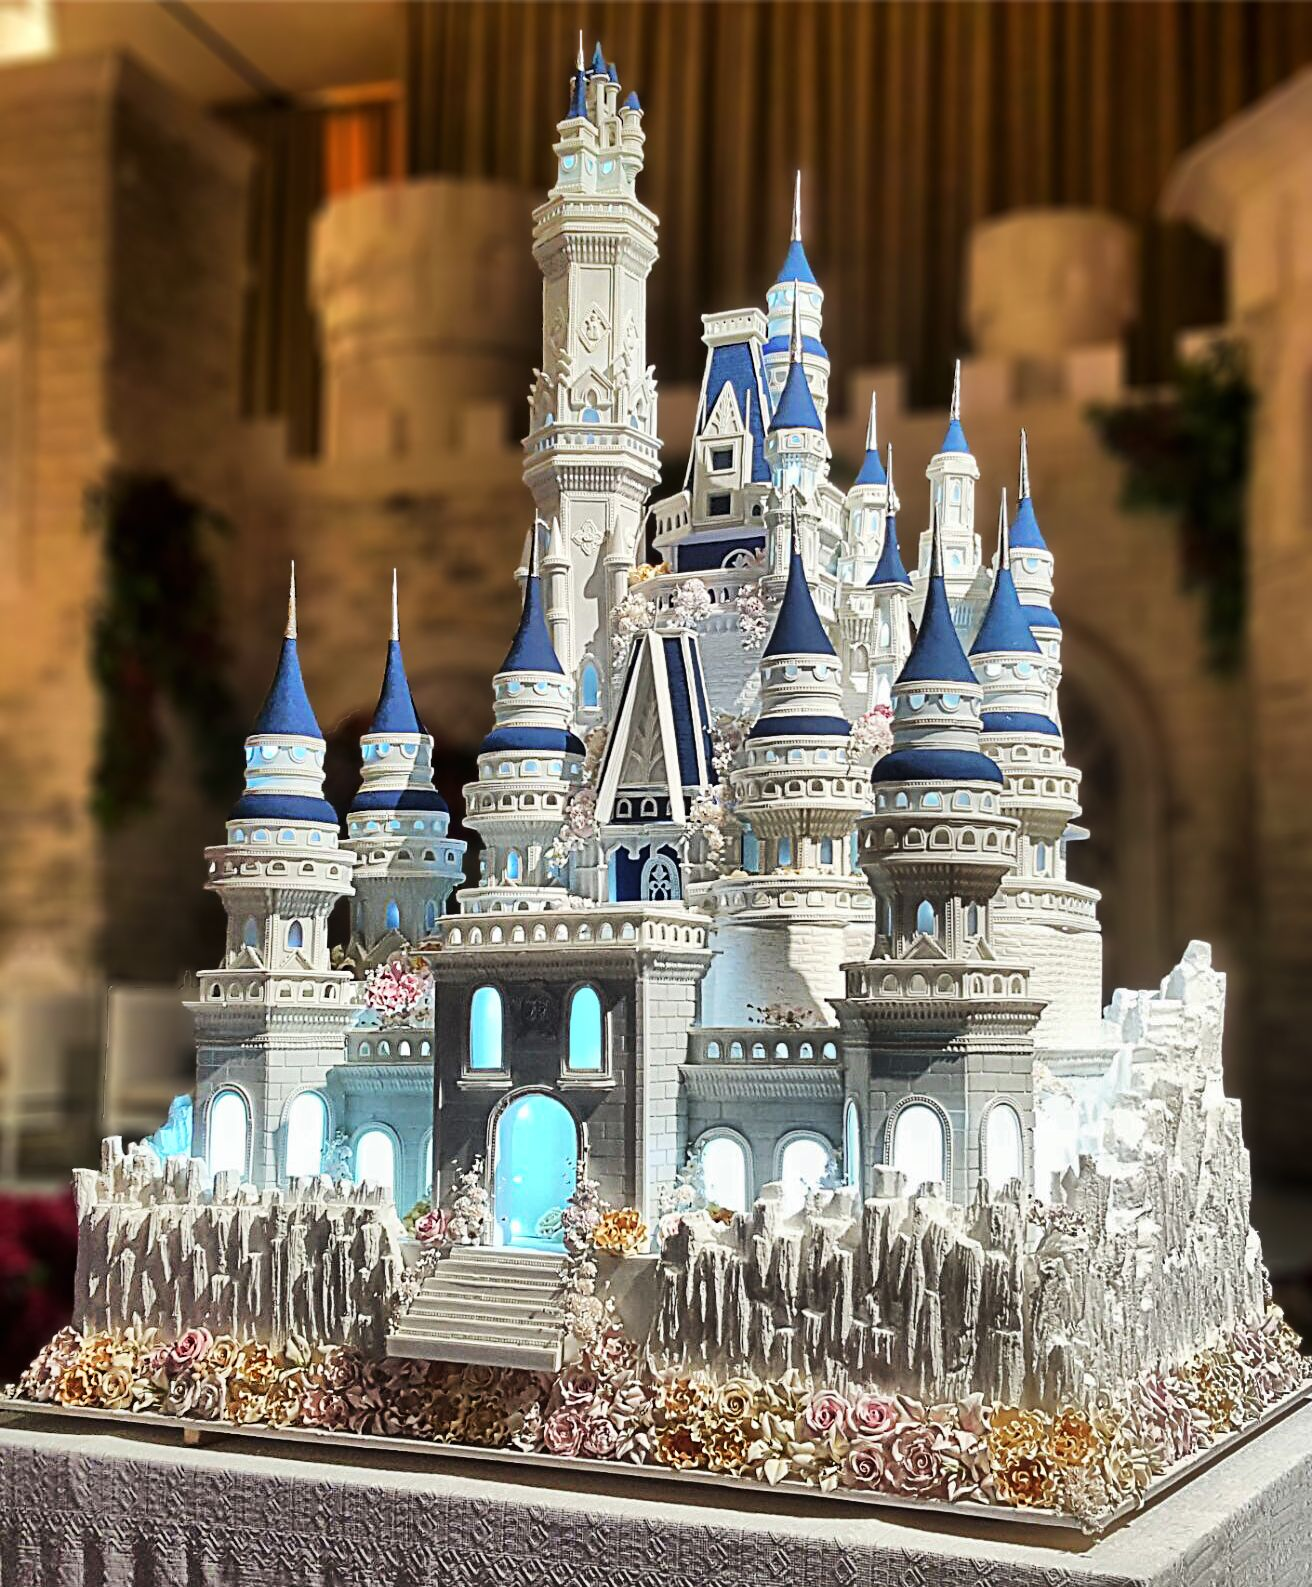 Another amazing 3 meters high and edible Castle wedding cake from